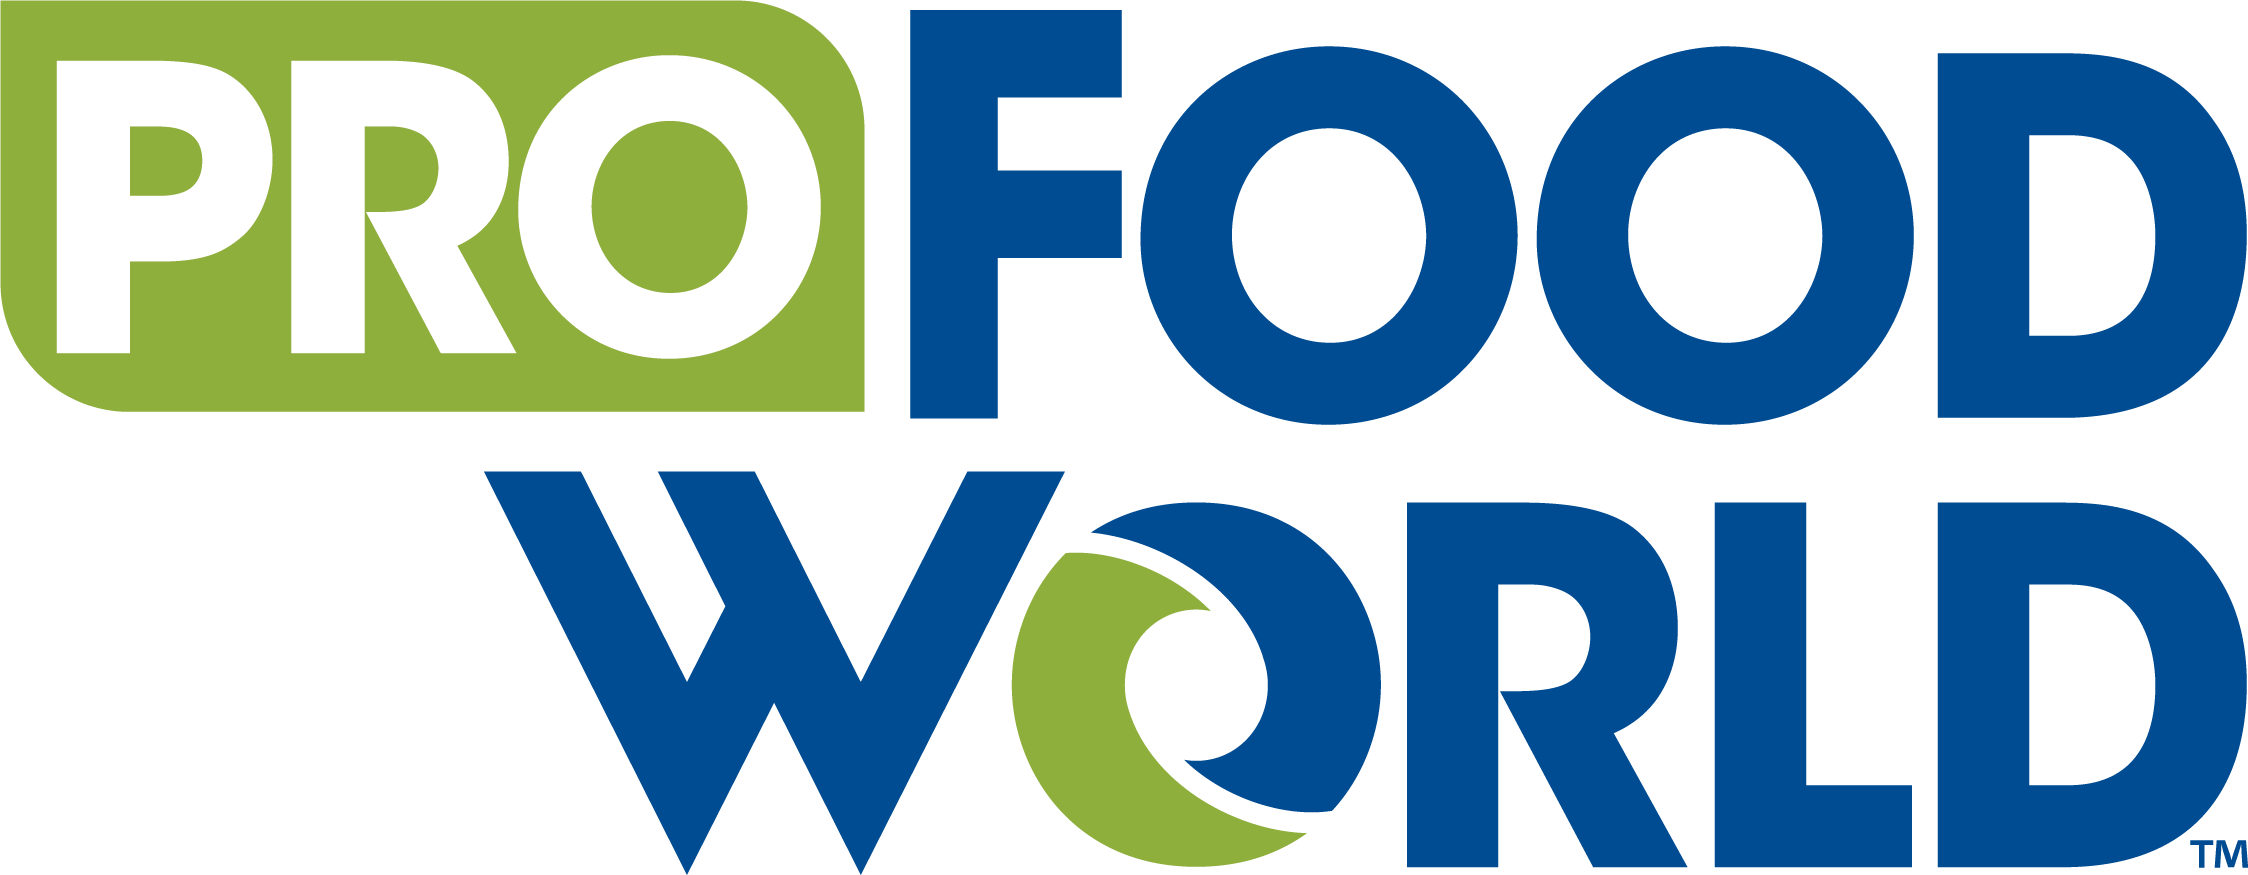 PRO Food World